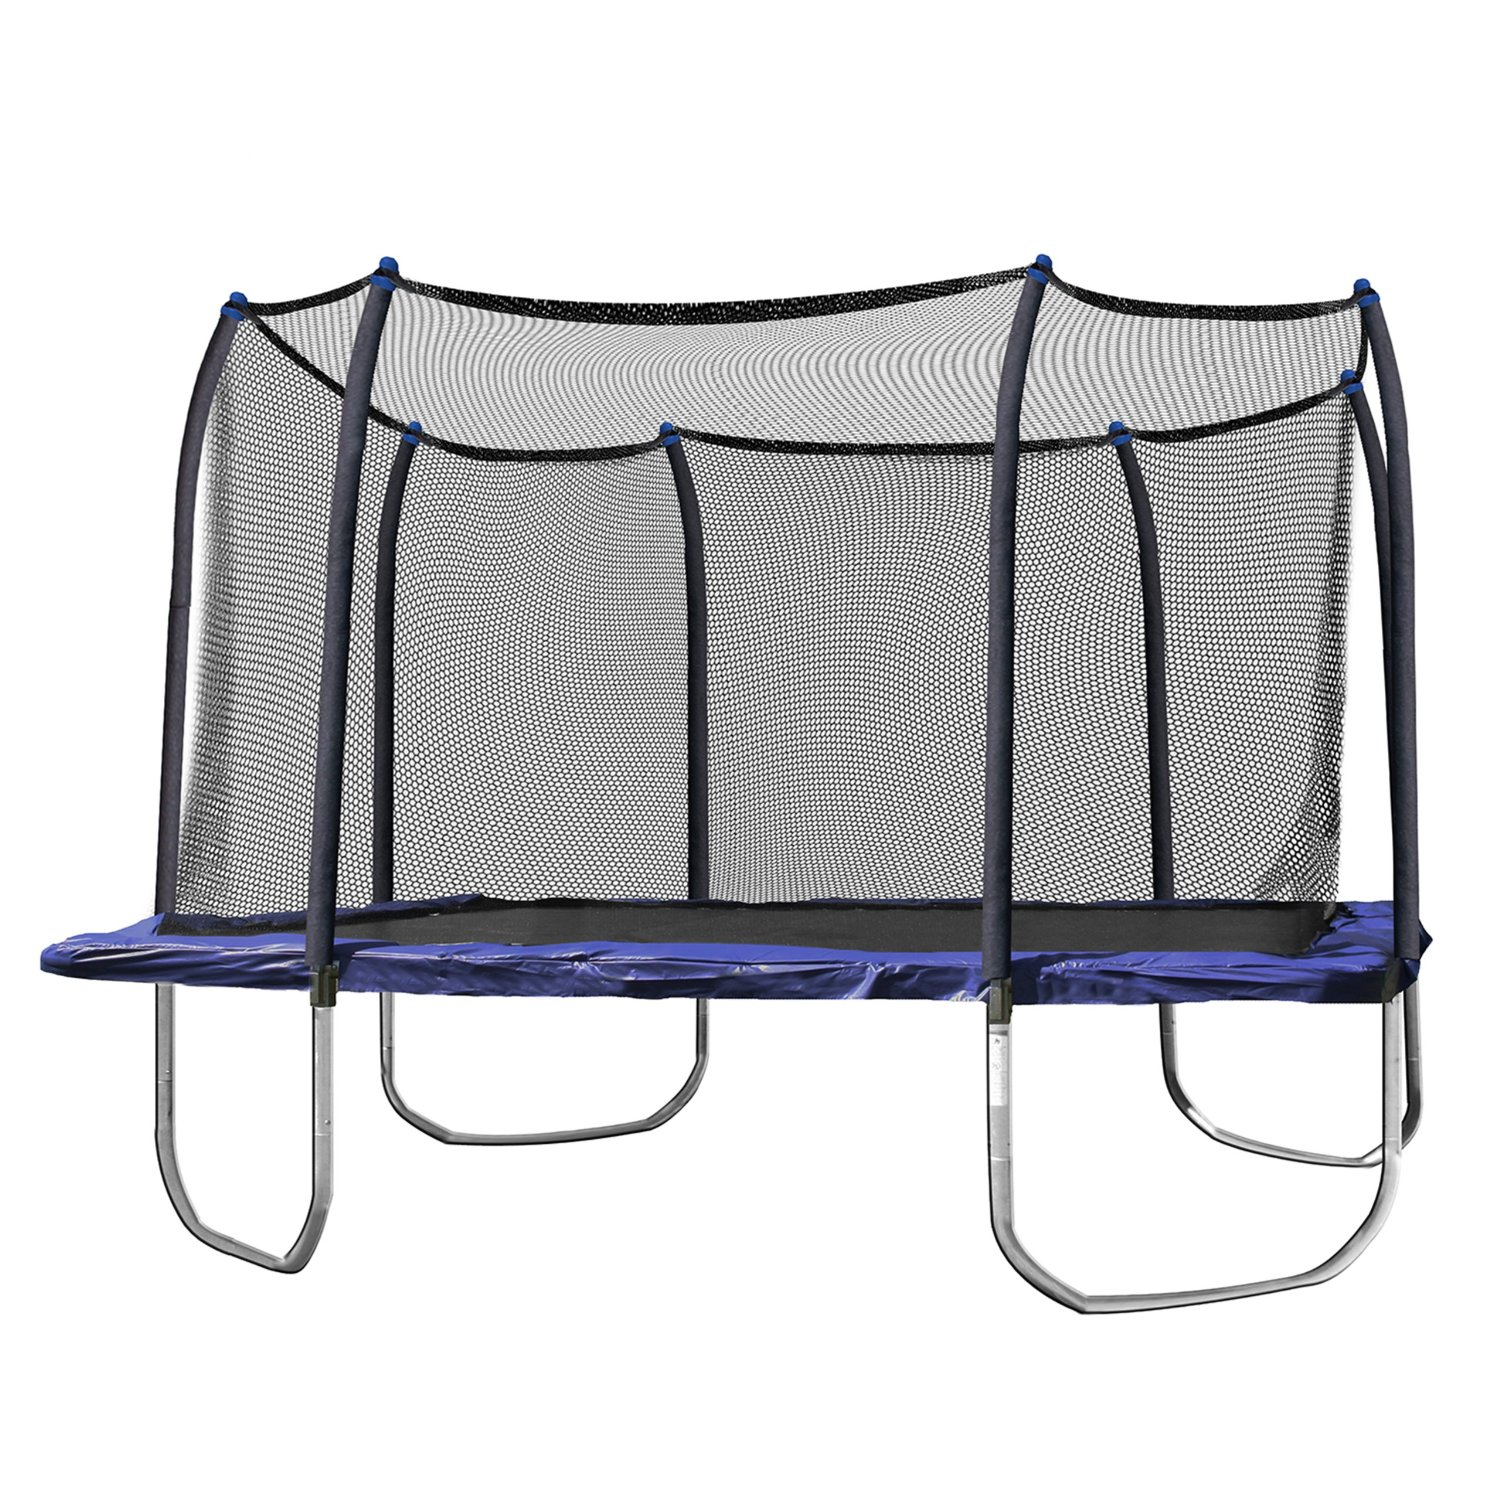 Skywalker 14 Foot Square Trampoline And Enclosure With Spring Pad